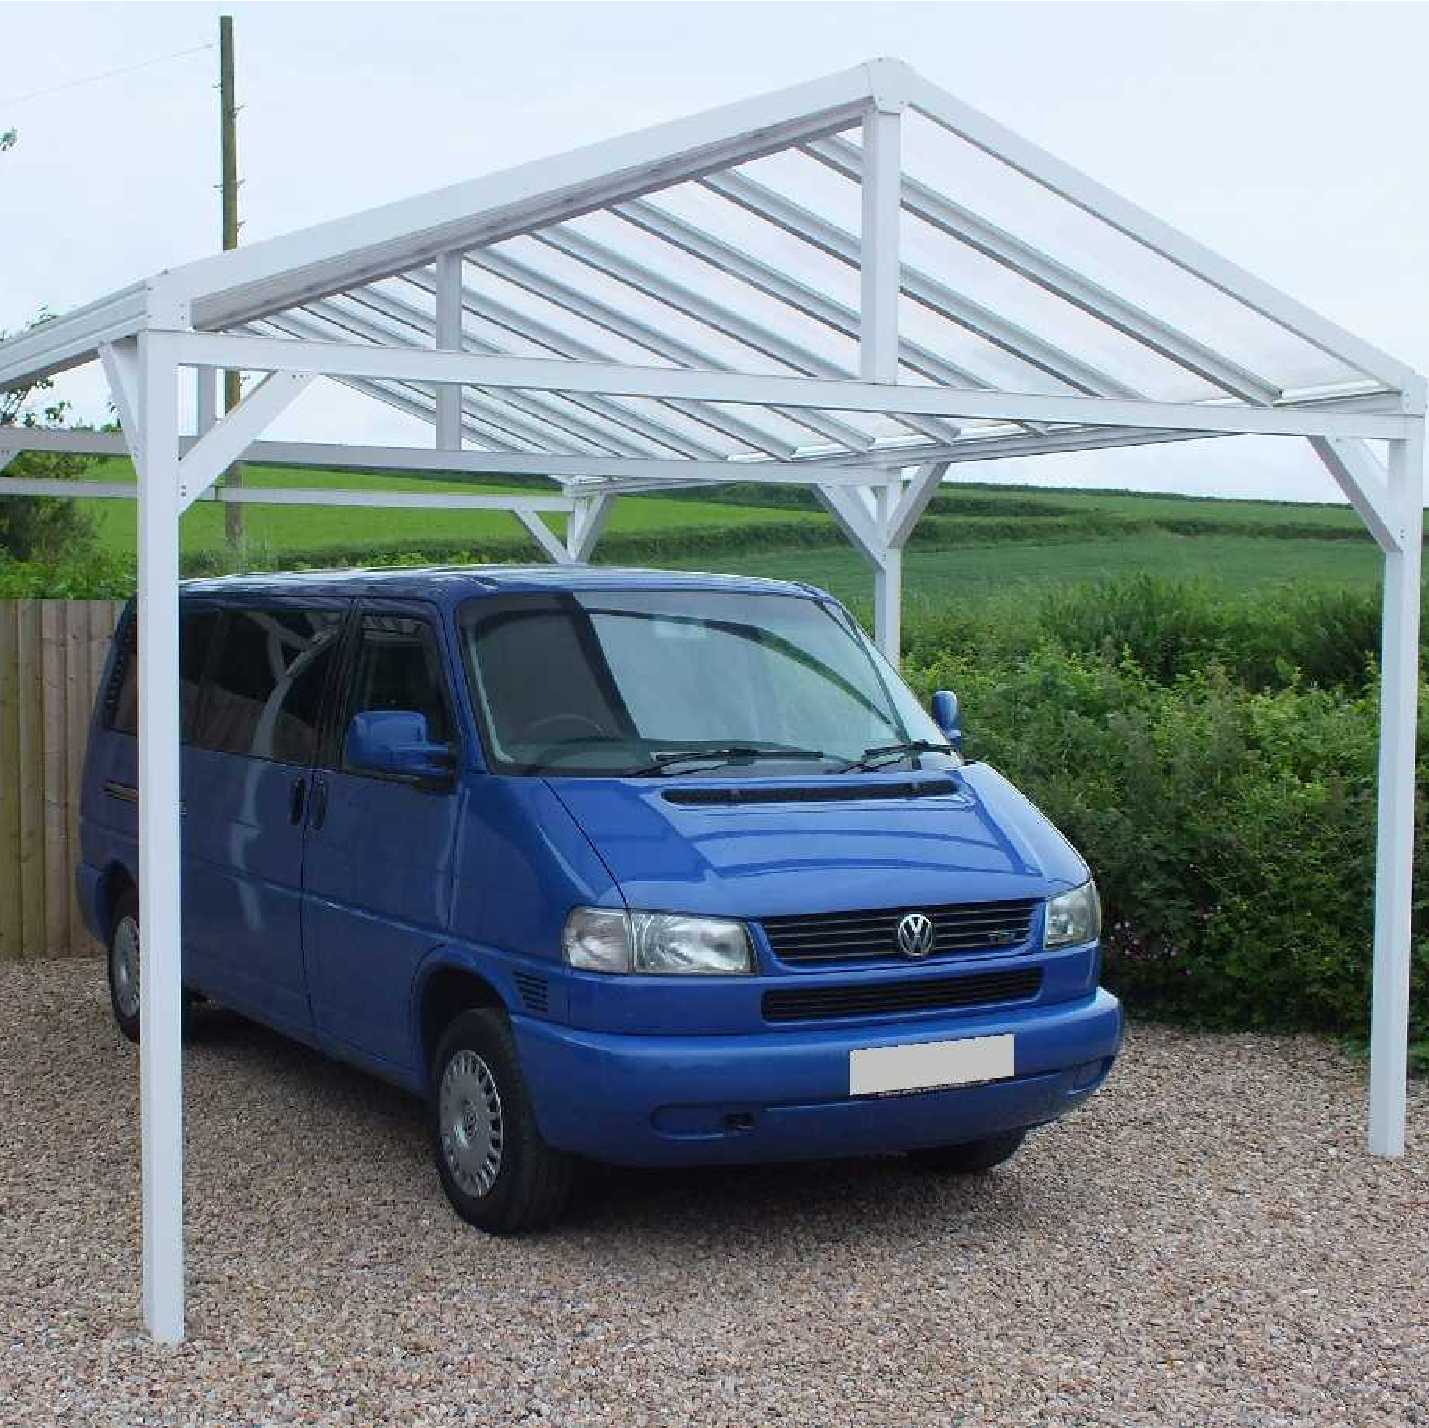 Omega Smart Free-Standing, Gable-Roof (type 1) Canopy with 16mm Polycarbonate Glazing - 7.4m (W) x 4.0m (P), (8) Supporting Posts